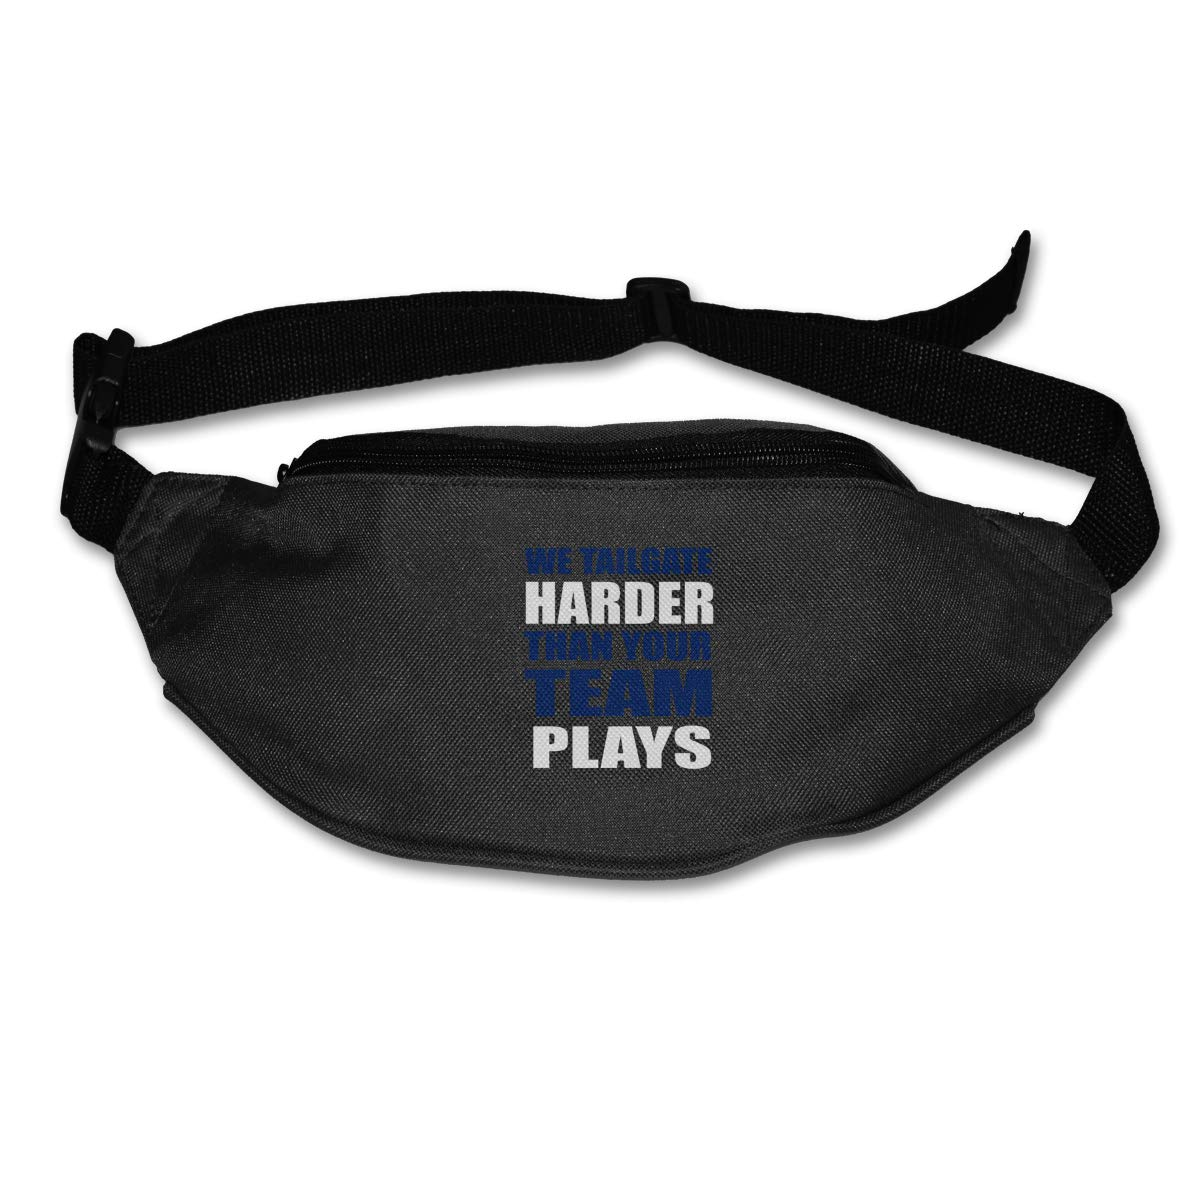 Sport Waist Bag Fanny Pack For Run We Tailgate Harder Than Your Team Plays